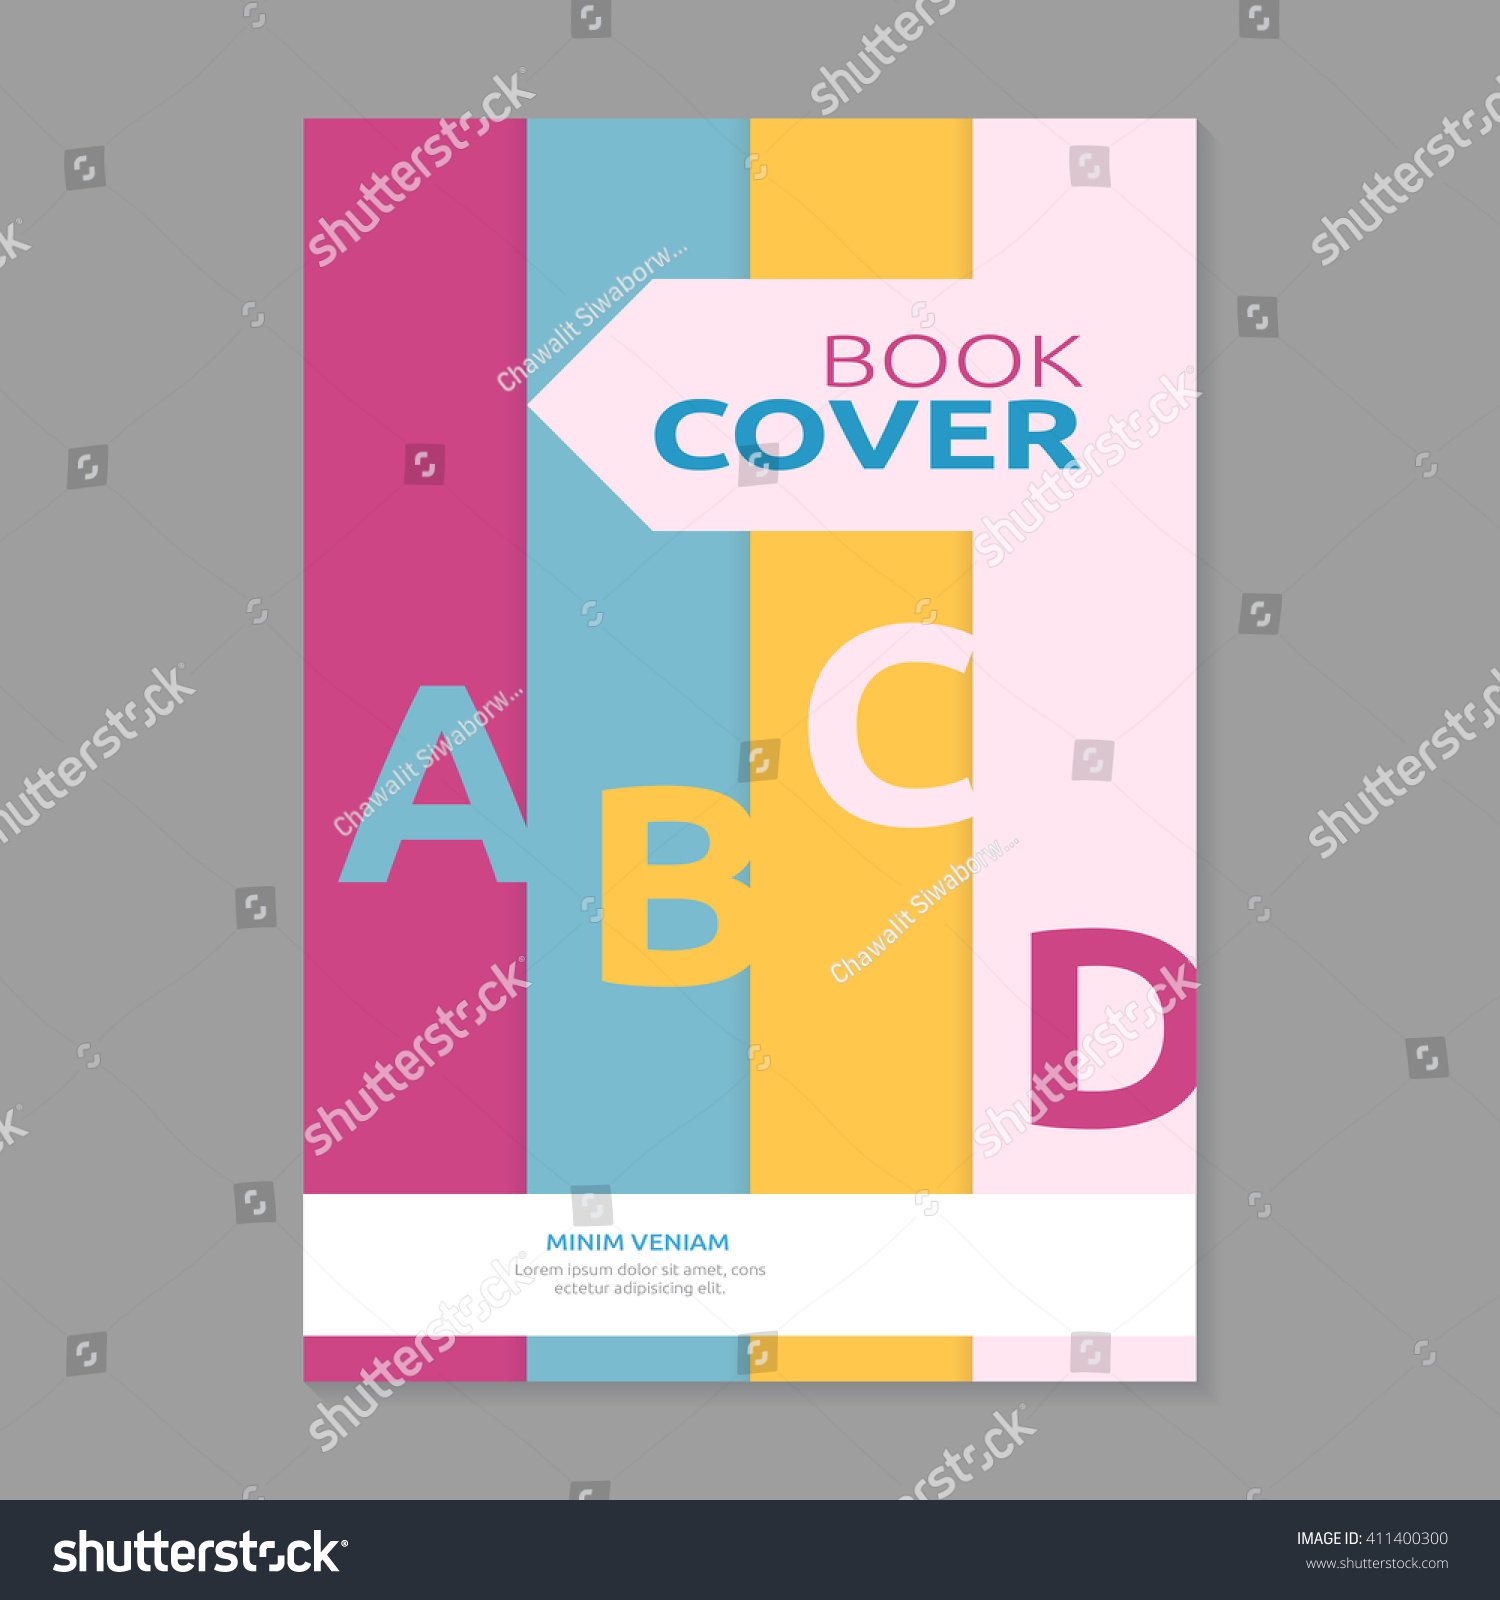 sweet color book cover design template stock vector 411400300 shutterstock. Black Bedroom Furniture Sets. Home Design Ideas